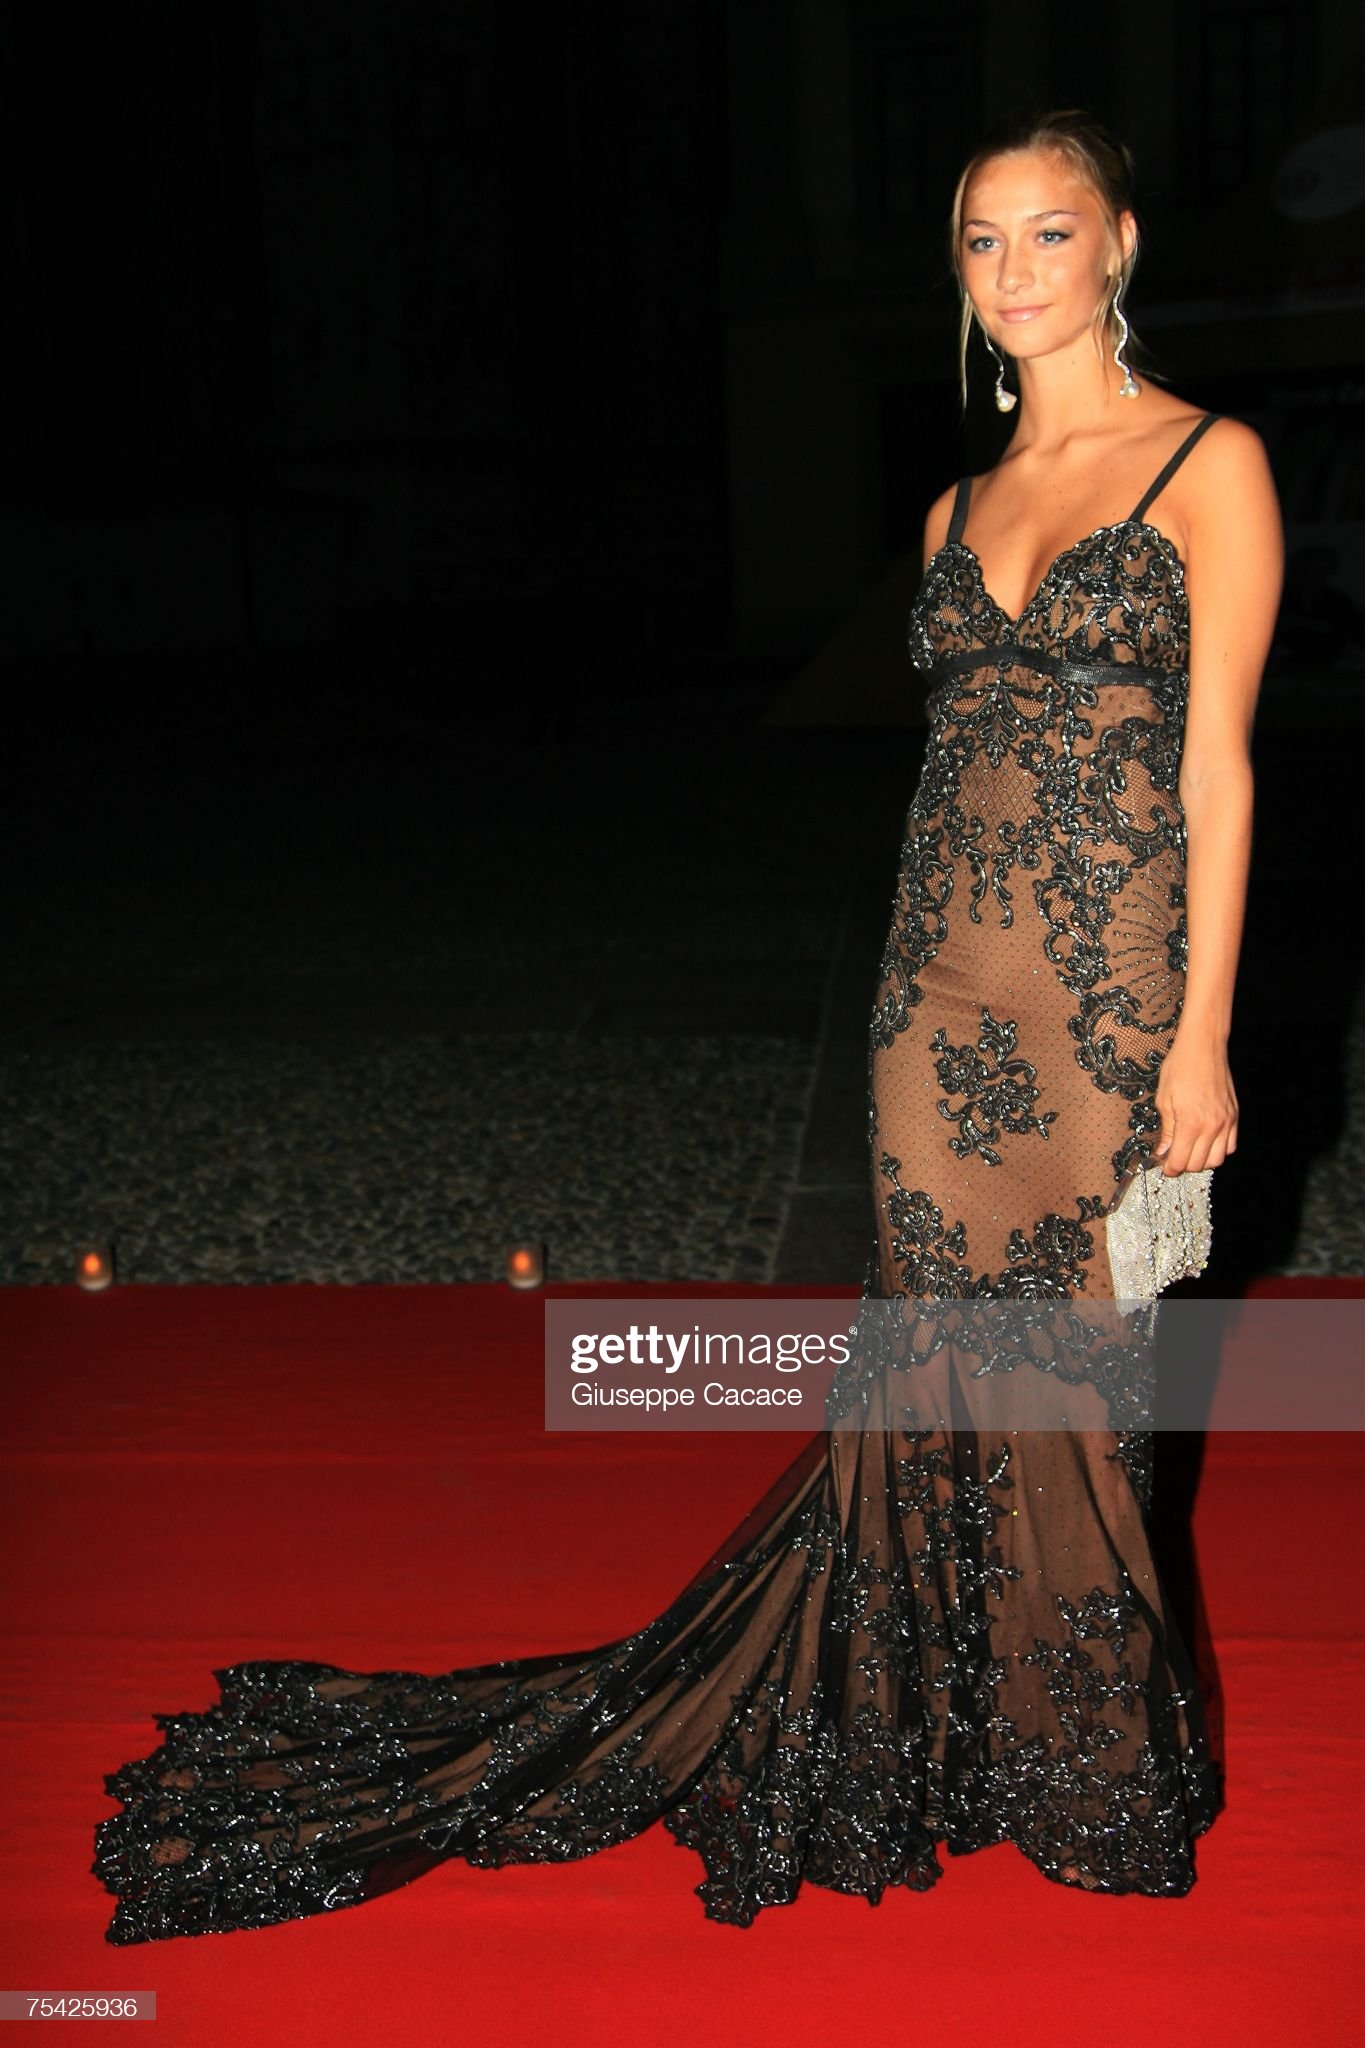 Tenth Anniversary Of Death Of Gianni Versace : News Photo